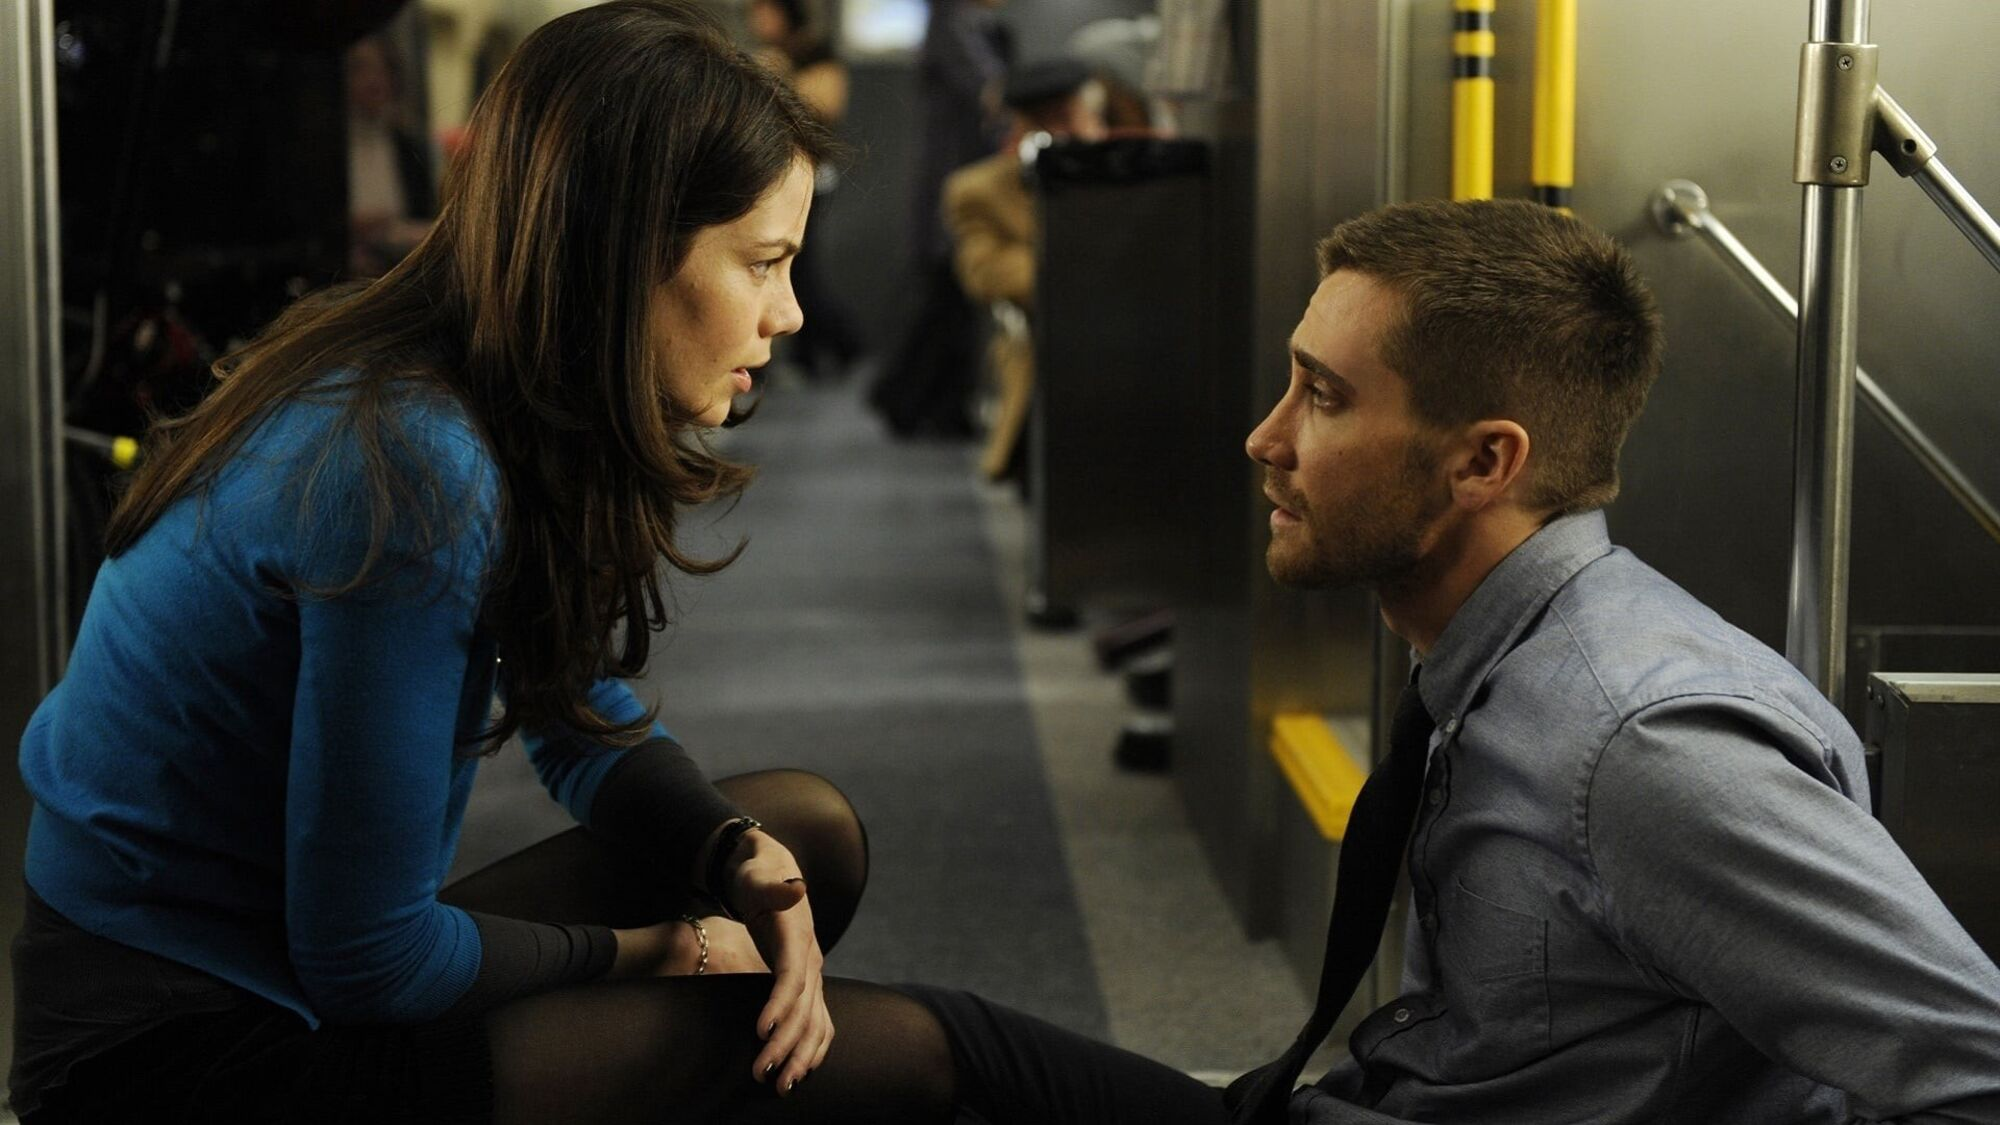 Source Code (2011) - Jake Gyllenhaal and Michelle Monaghan